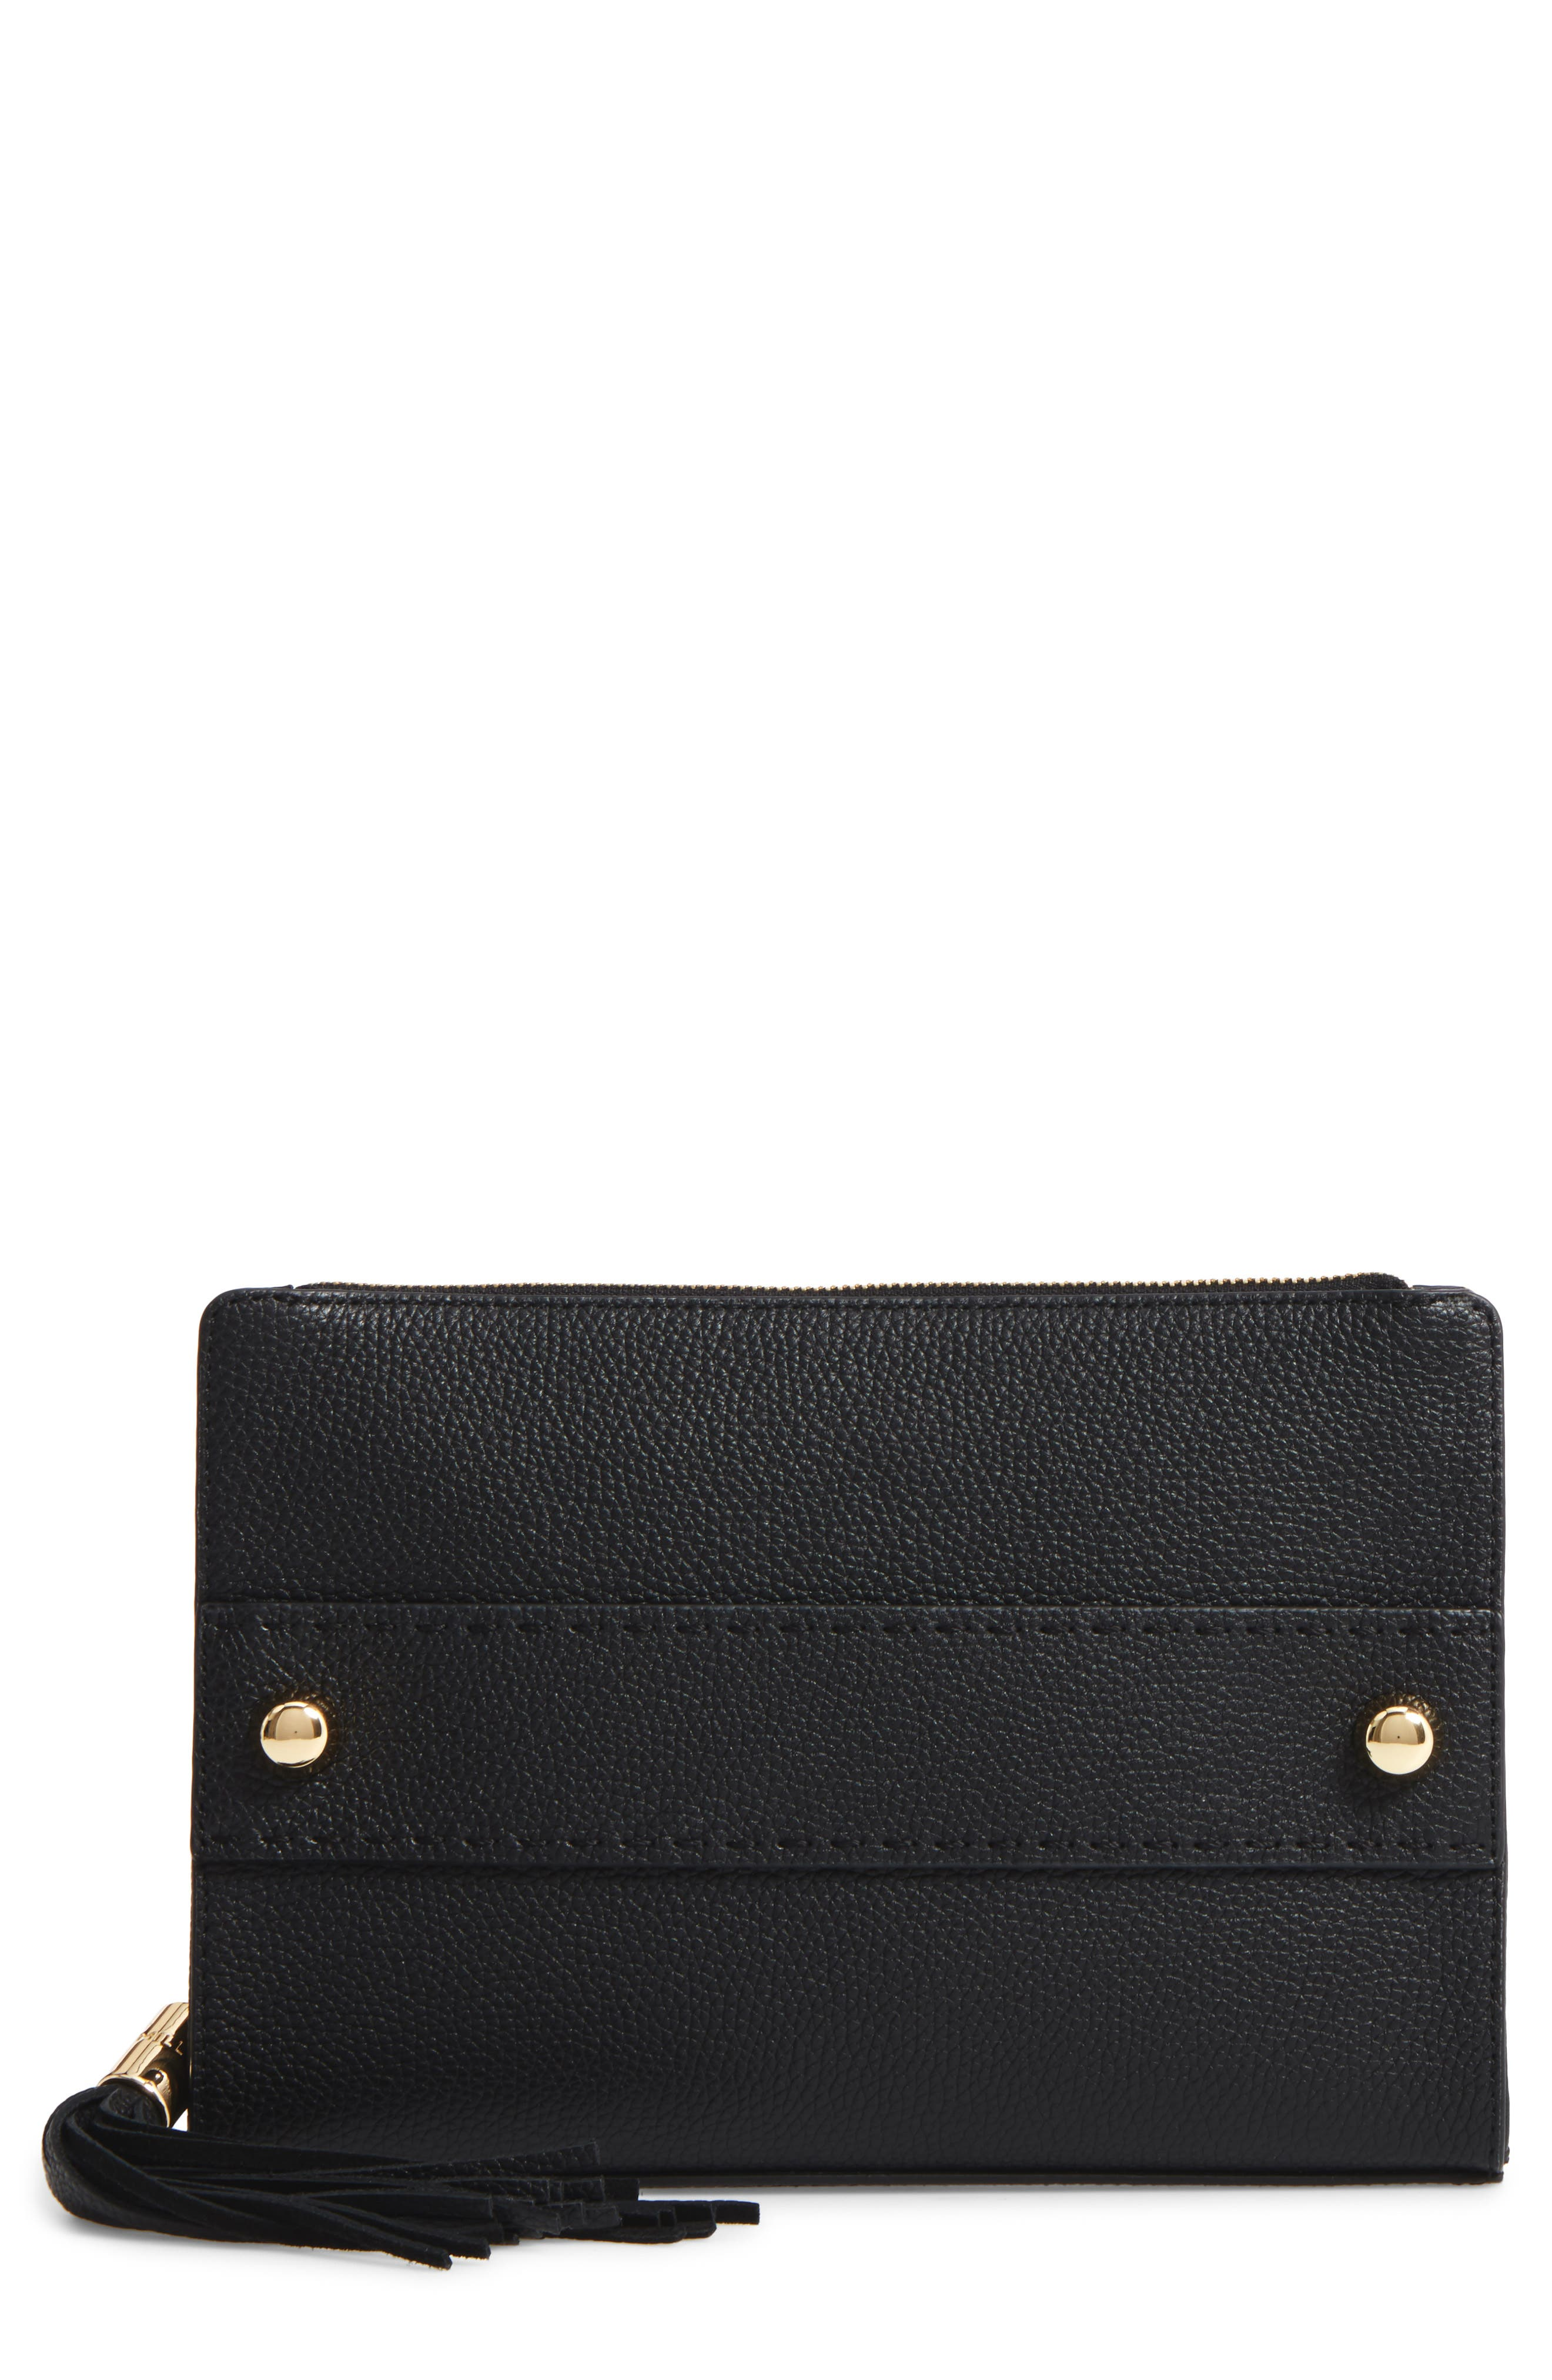 Astor Leather Clutch,                             Main thumbnail 1, color,                             001